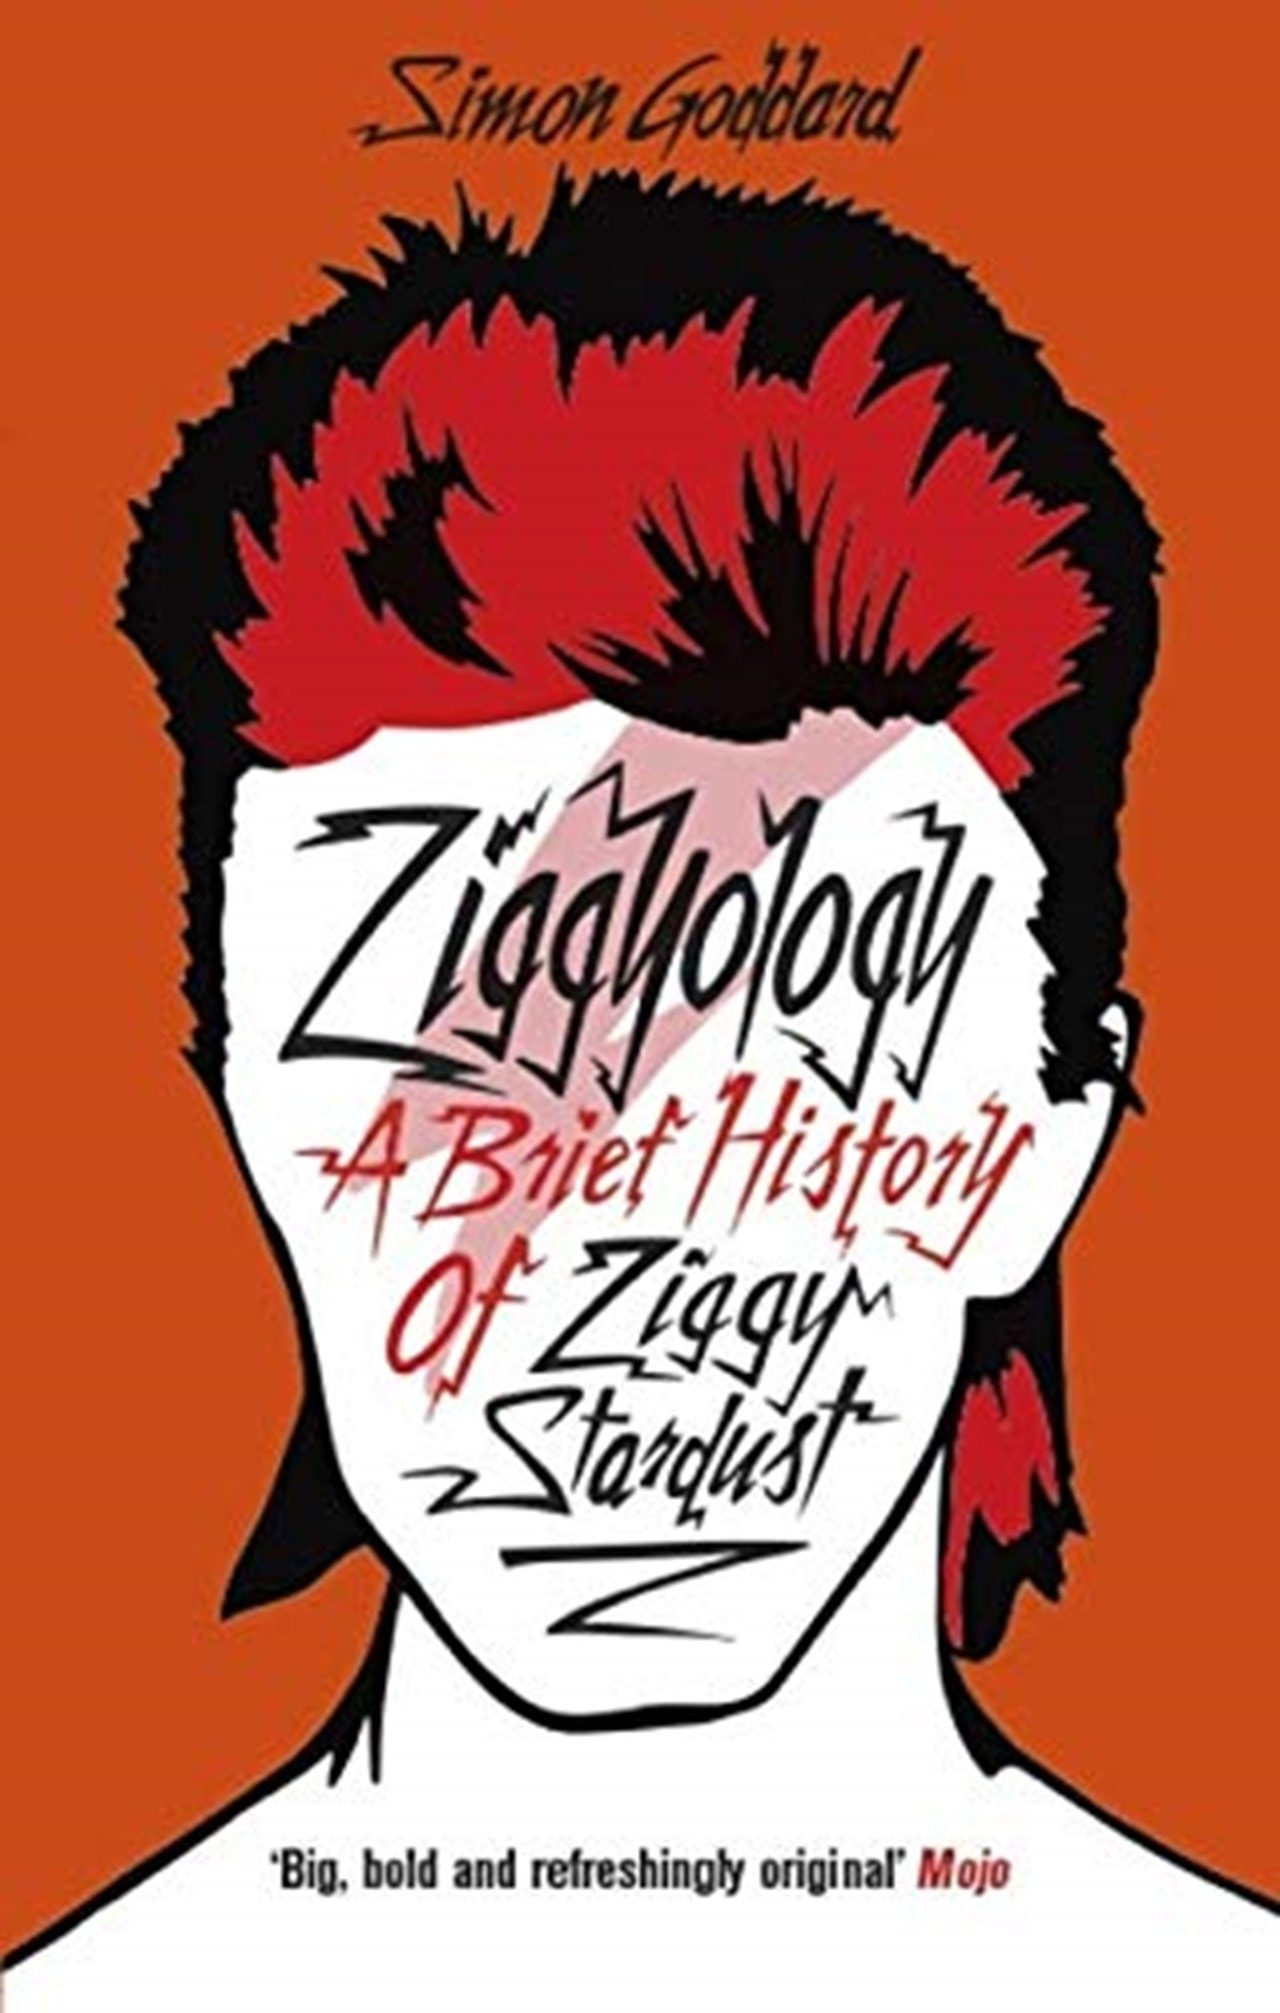 Ziggyology: A Brief History of Ziggy Stardust - 1